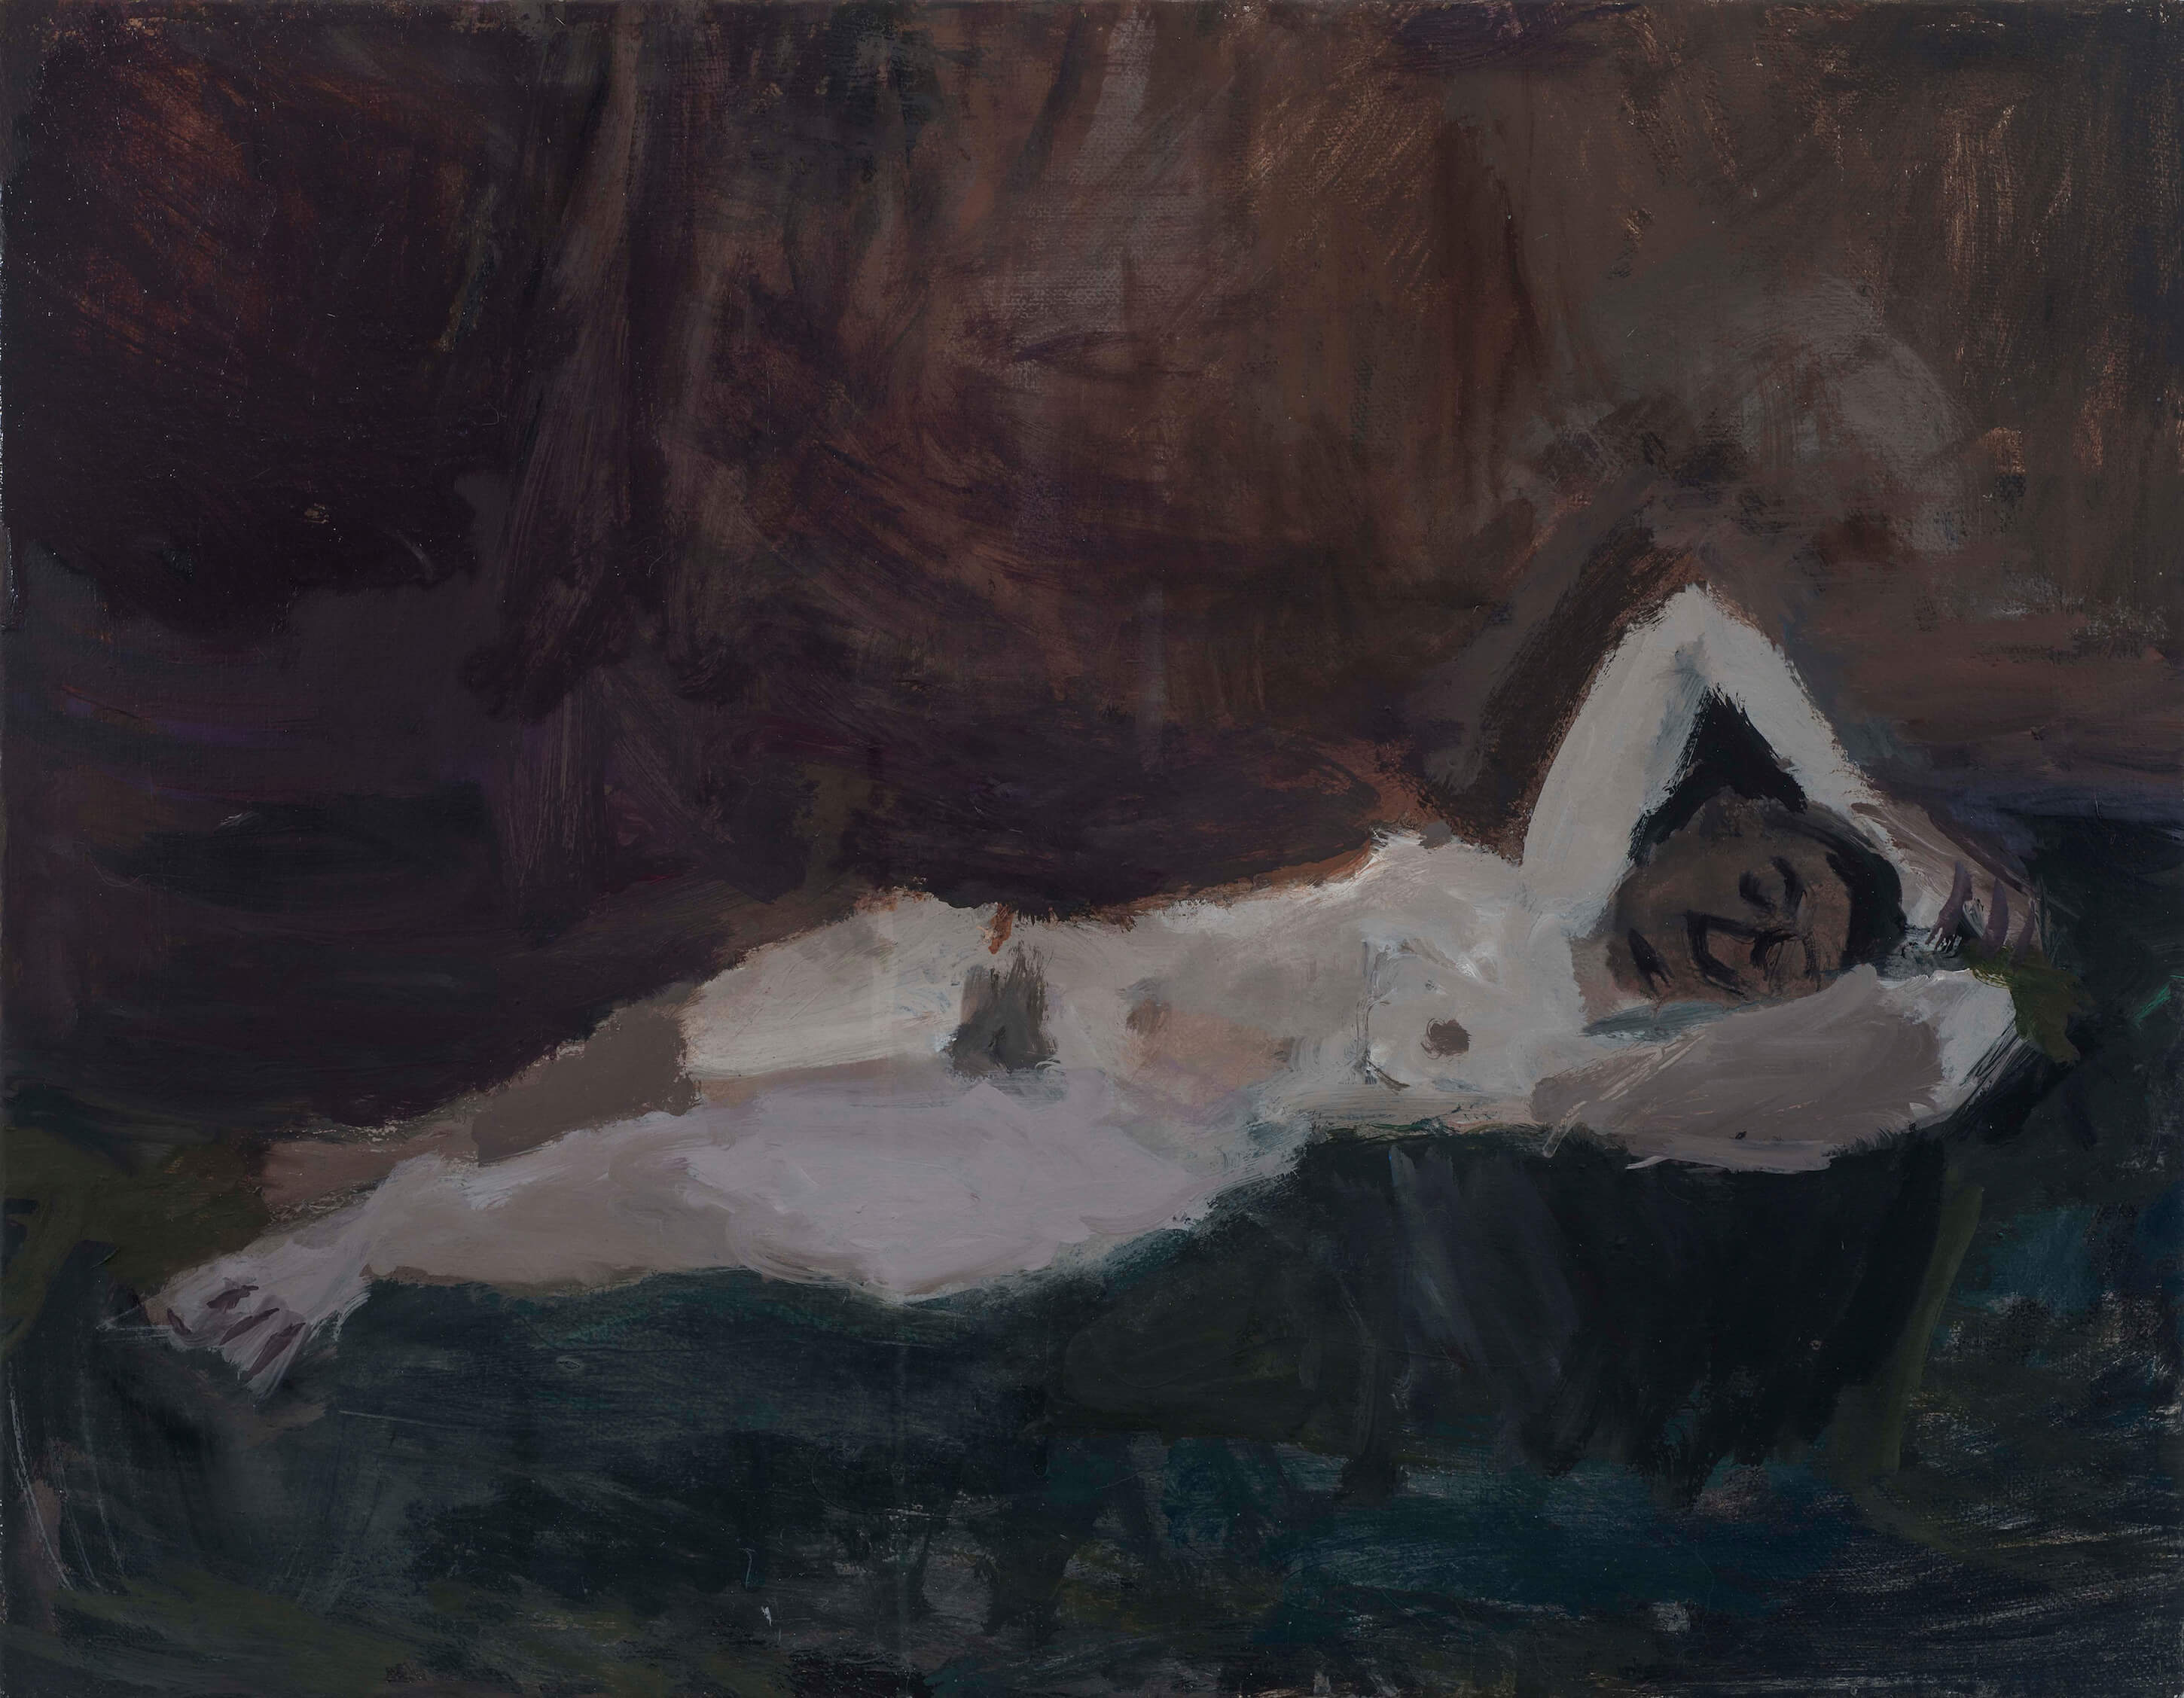 Janice Nowinski, Reclining Nude, 2017, oil on canvas, 14 x 17 3/4 inches